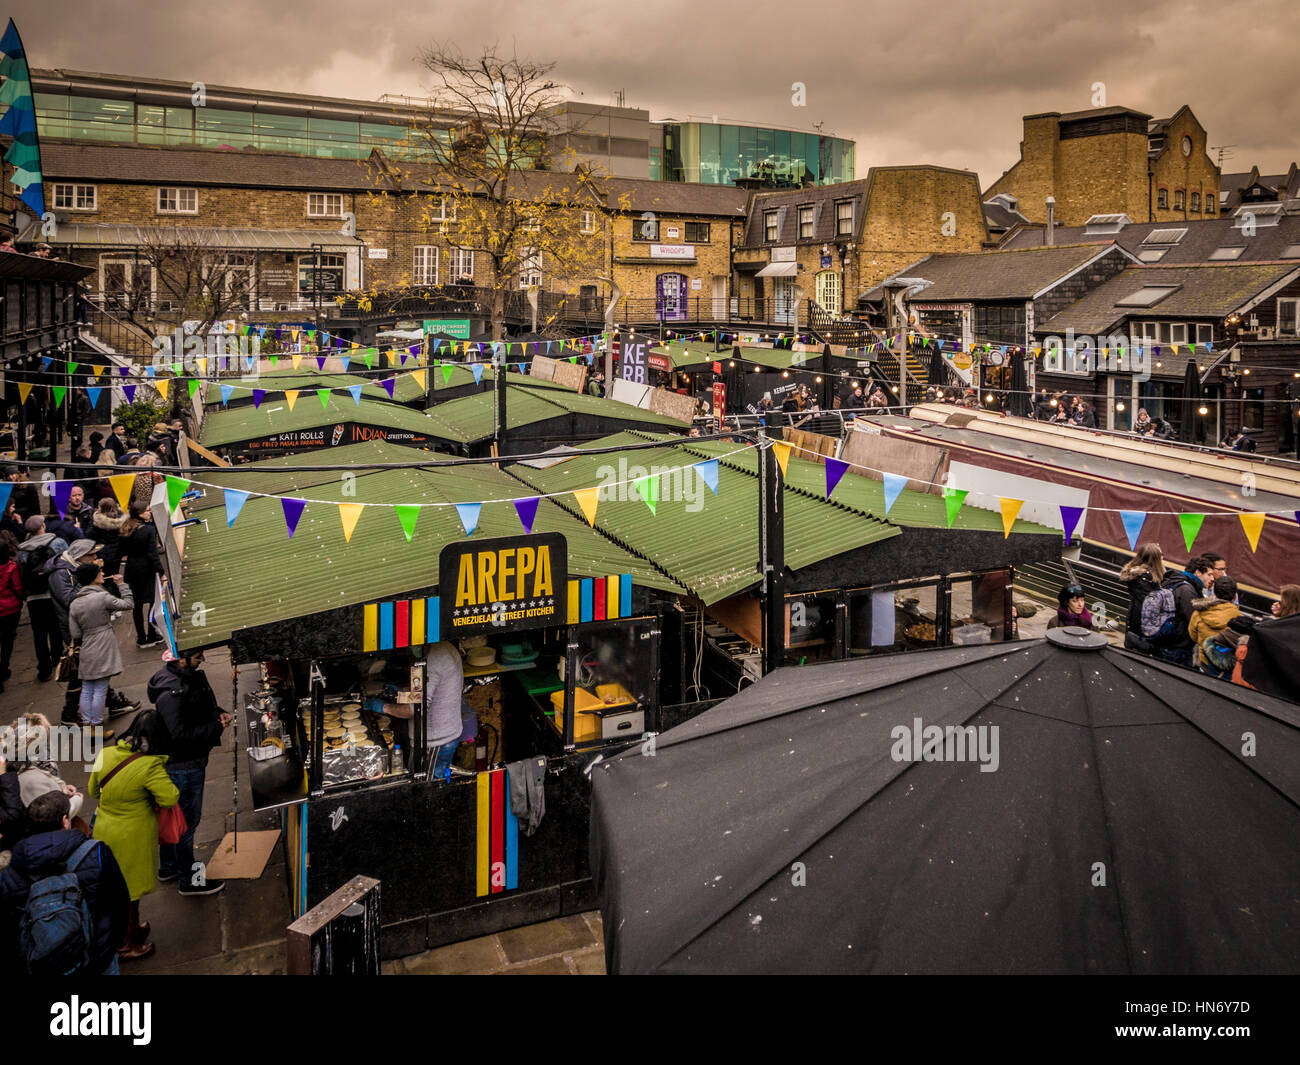 Street food stalls in courtyeard at Camden Market, London, UK. - Stock Image